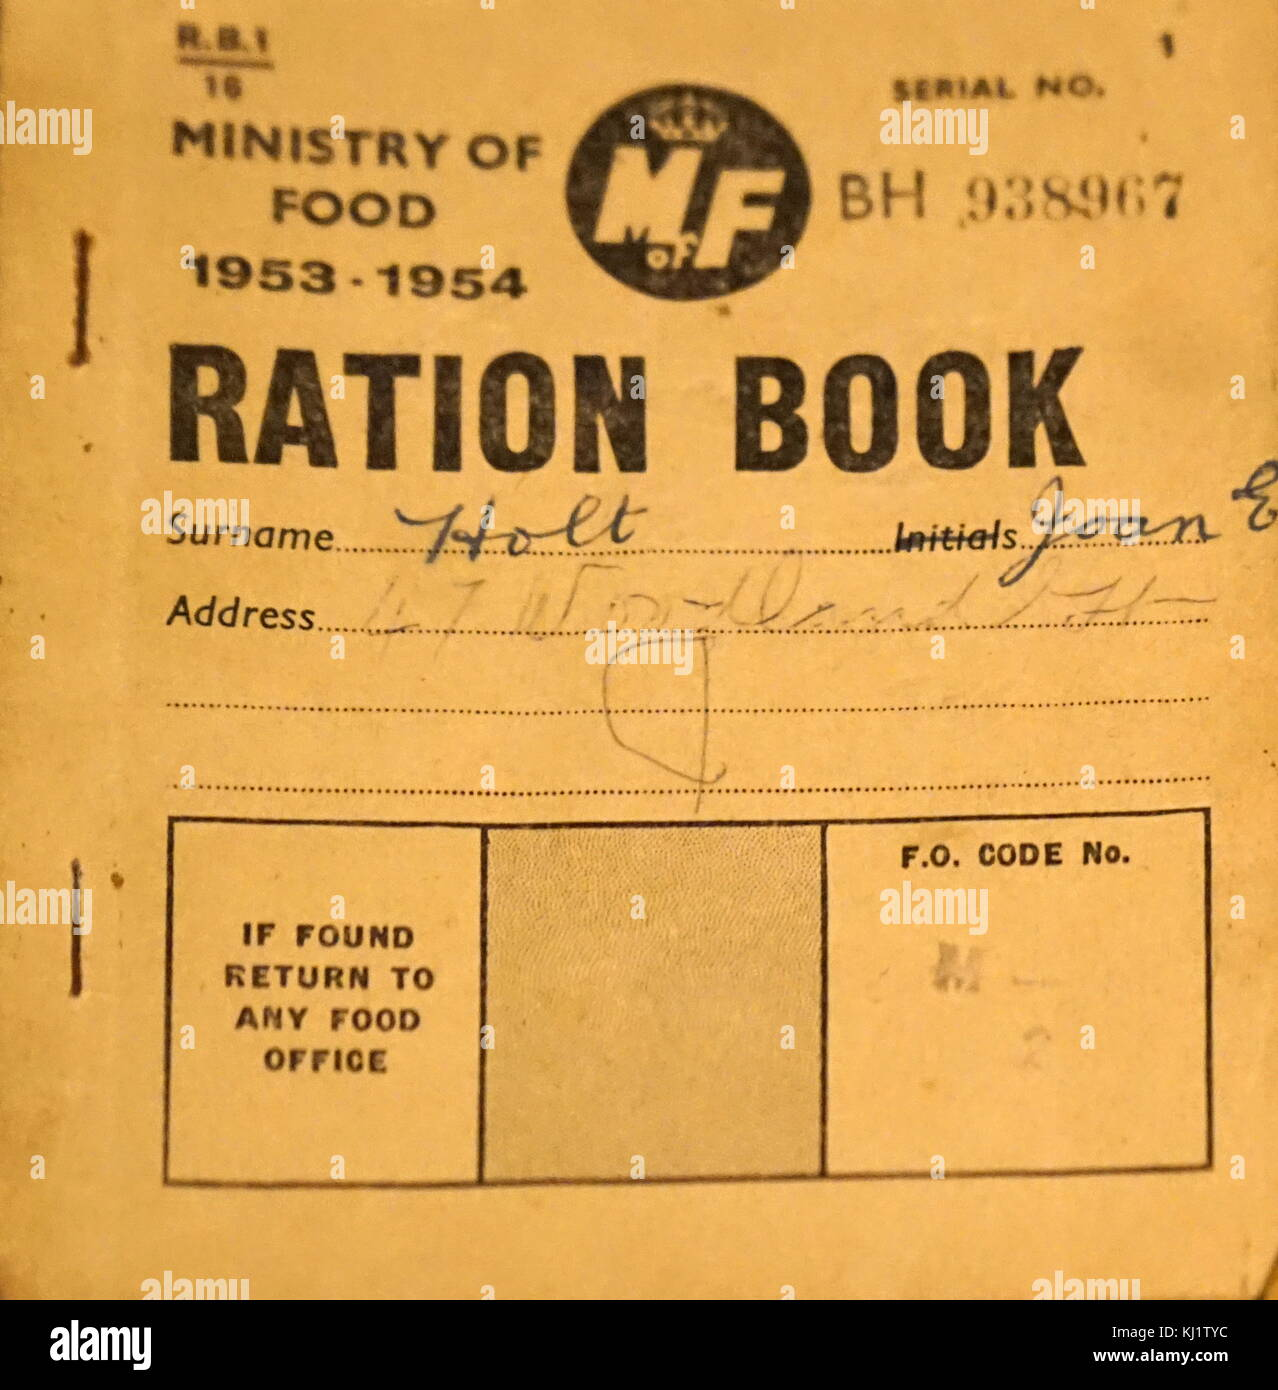 A Second World War Ration Book. Rationing was introduced as a temporary measure by the British government during - Stock Image